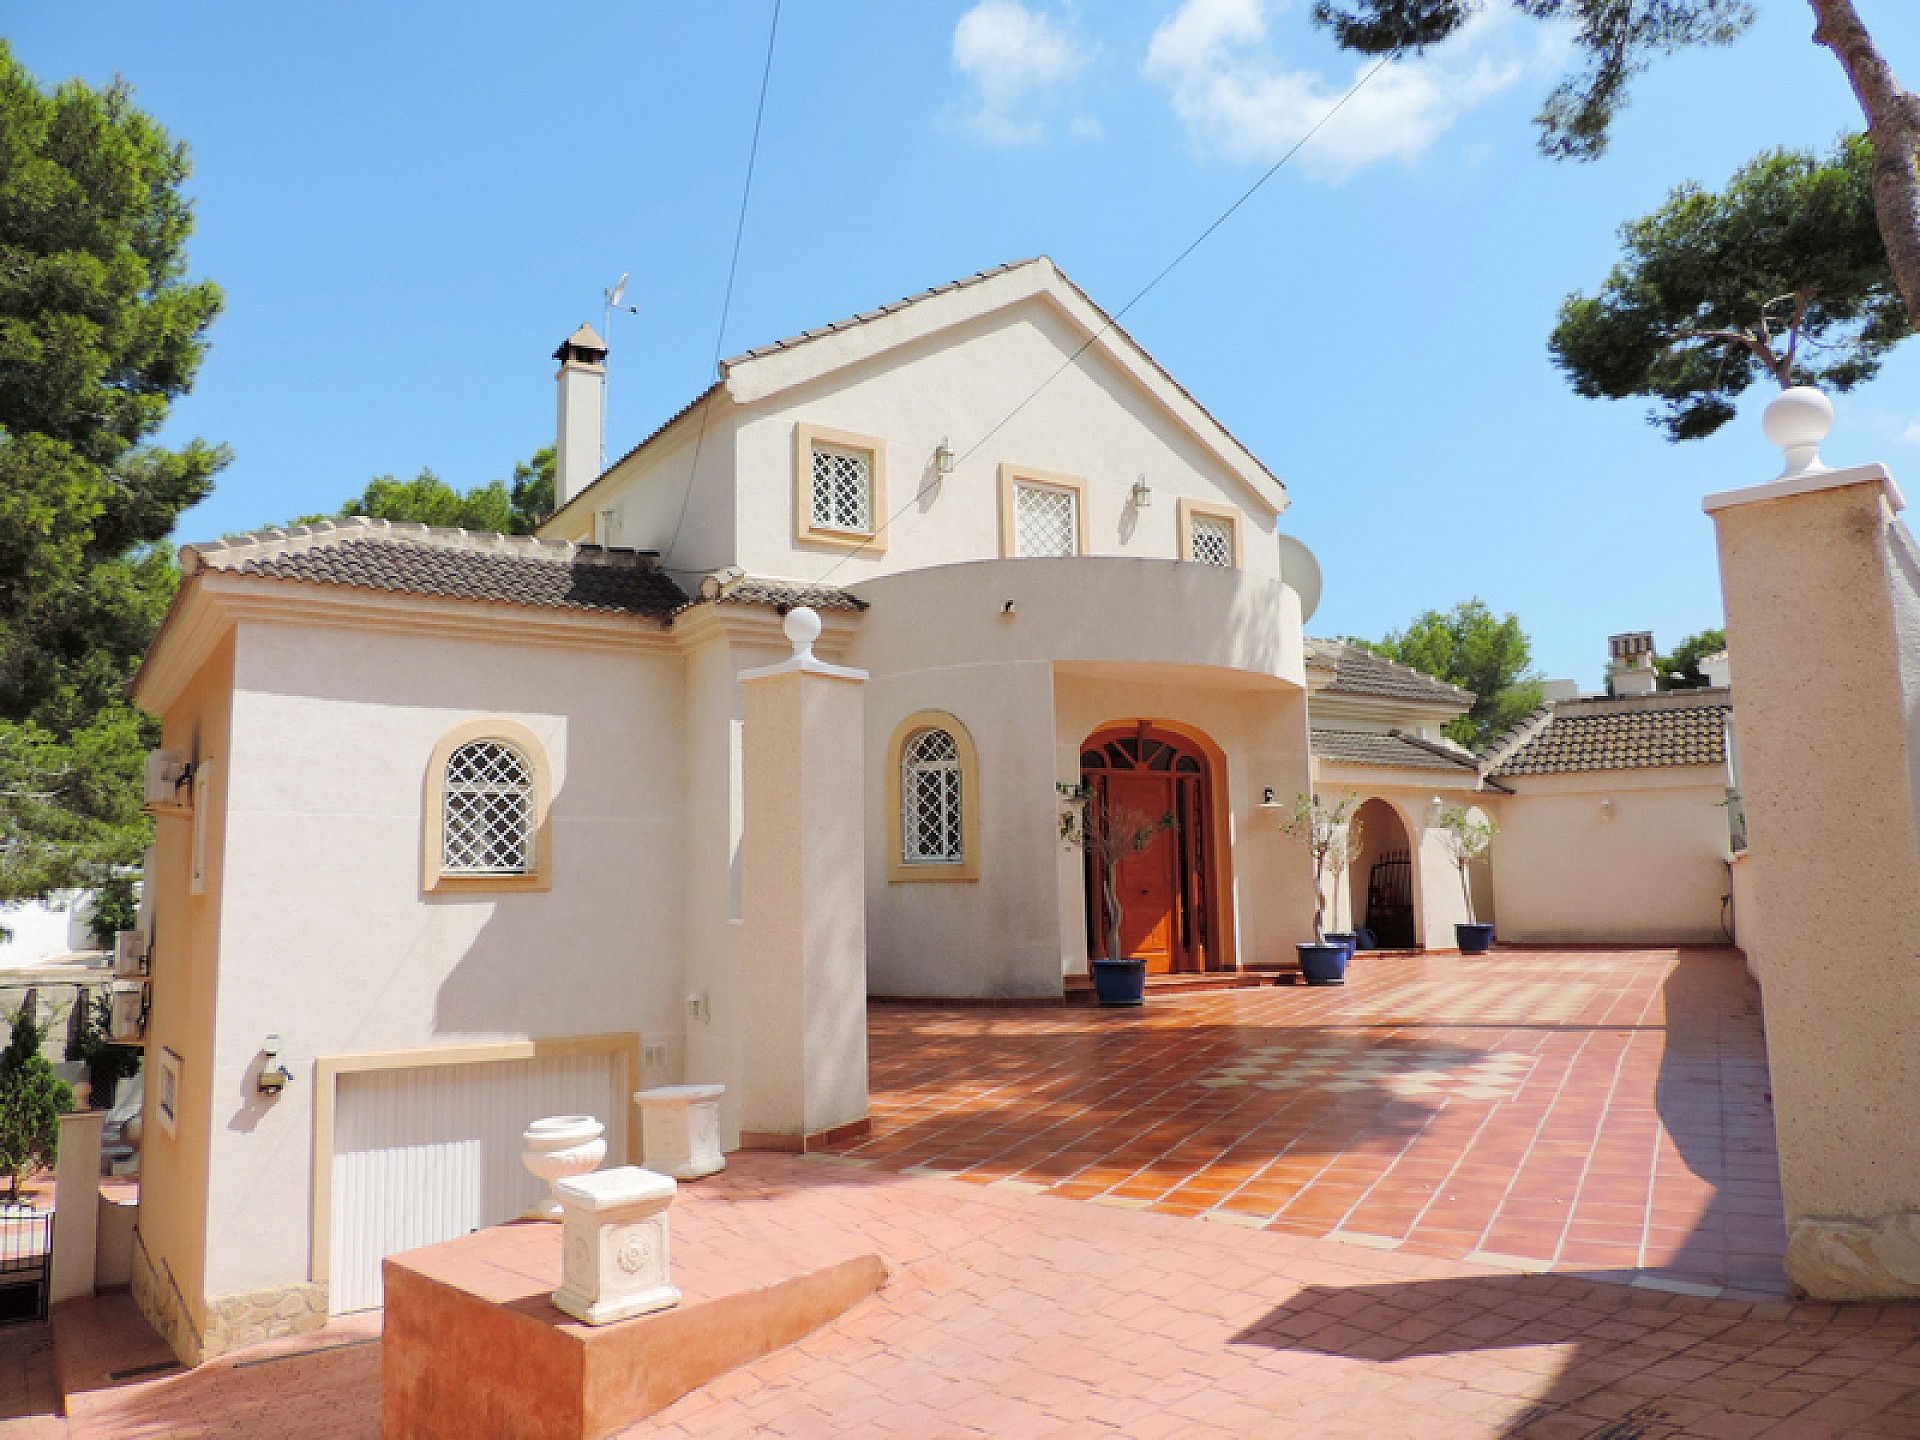 Main Photo of a 6 bedroom  Detached House for sale